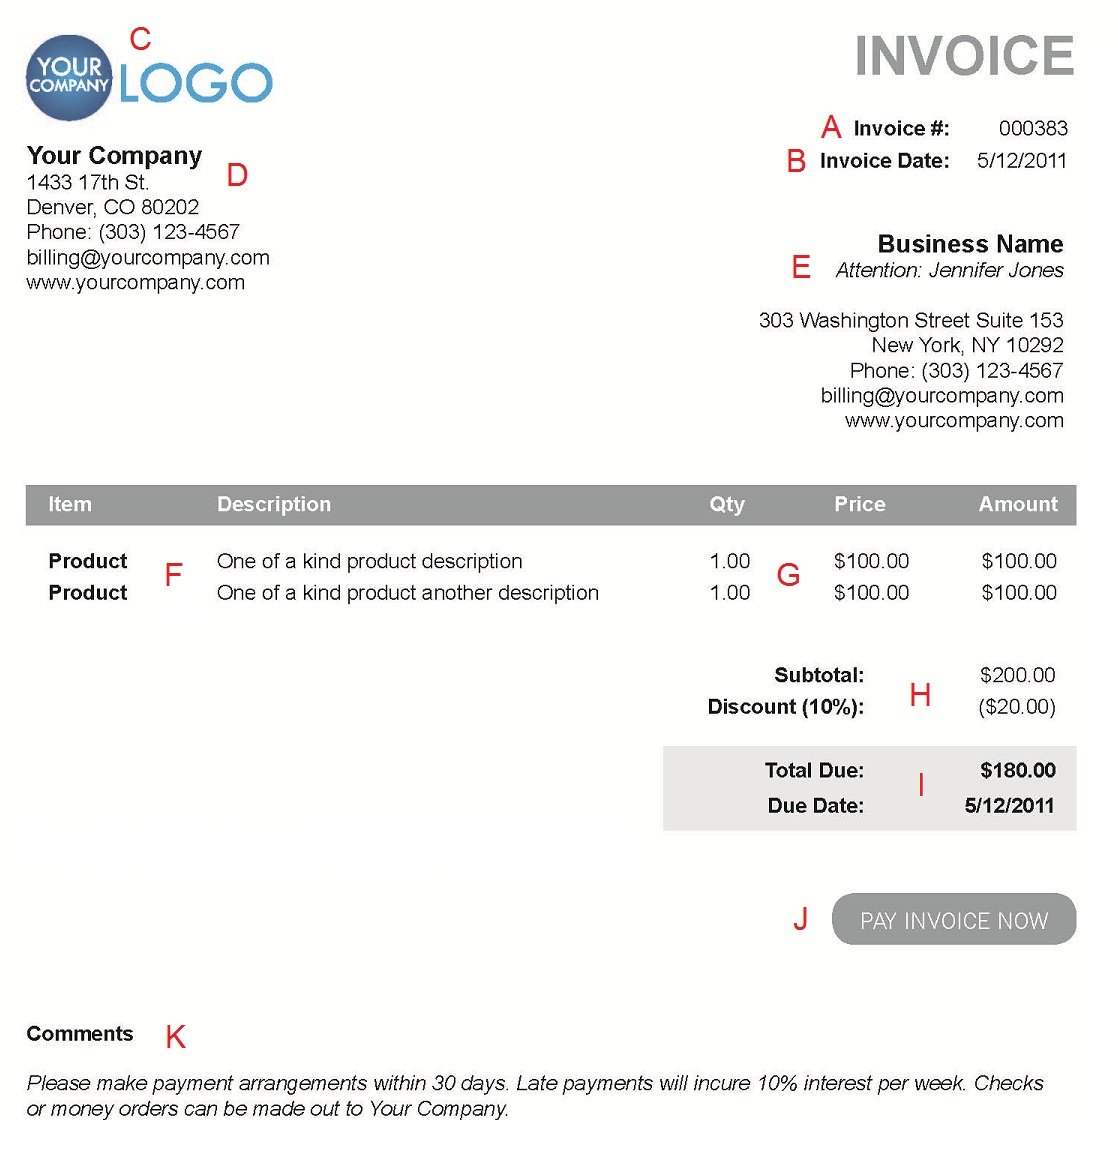 Theologygeekblogus  Pretty The  Different Sections Of An Electronic Payment Invoice With Likable A  With Beautiful Costco Receipts Online Also Estimated Gross Receipts In Addition New York Taxi Receipt And Filing Receipts As Well As Editable Receipt Template Additionally Subrogation Receipt From Paysimplecom With Theologygeekblogus  Likable The  Different Sections Of An Electronic Payment Invoice With Beautiful A  And Pretty Costco Receipts Online Also Estimated Gross Receipts In Addition New York Taxi Receipt From Paysimplecom